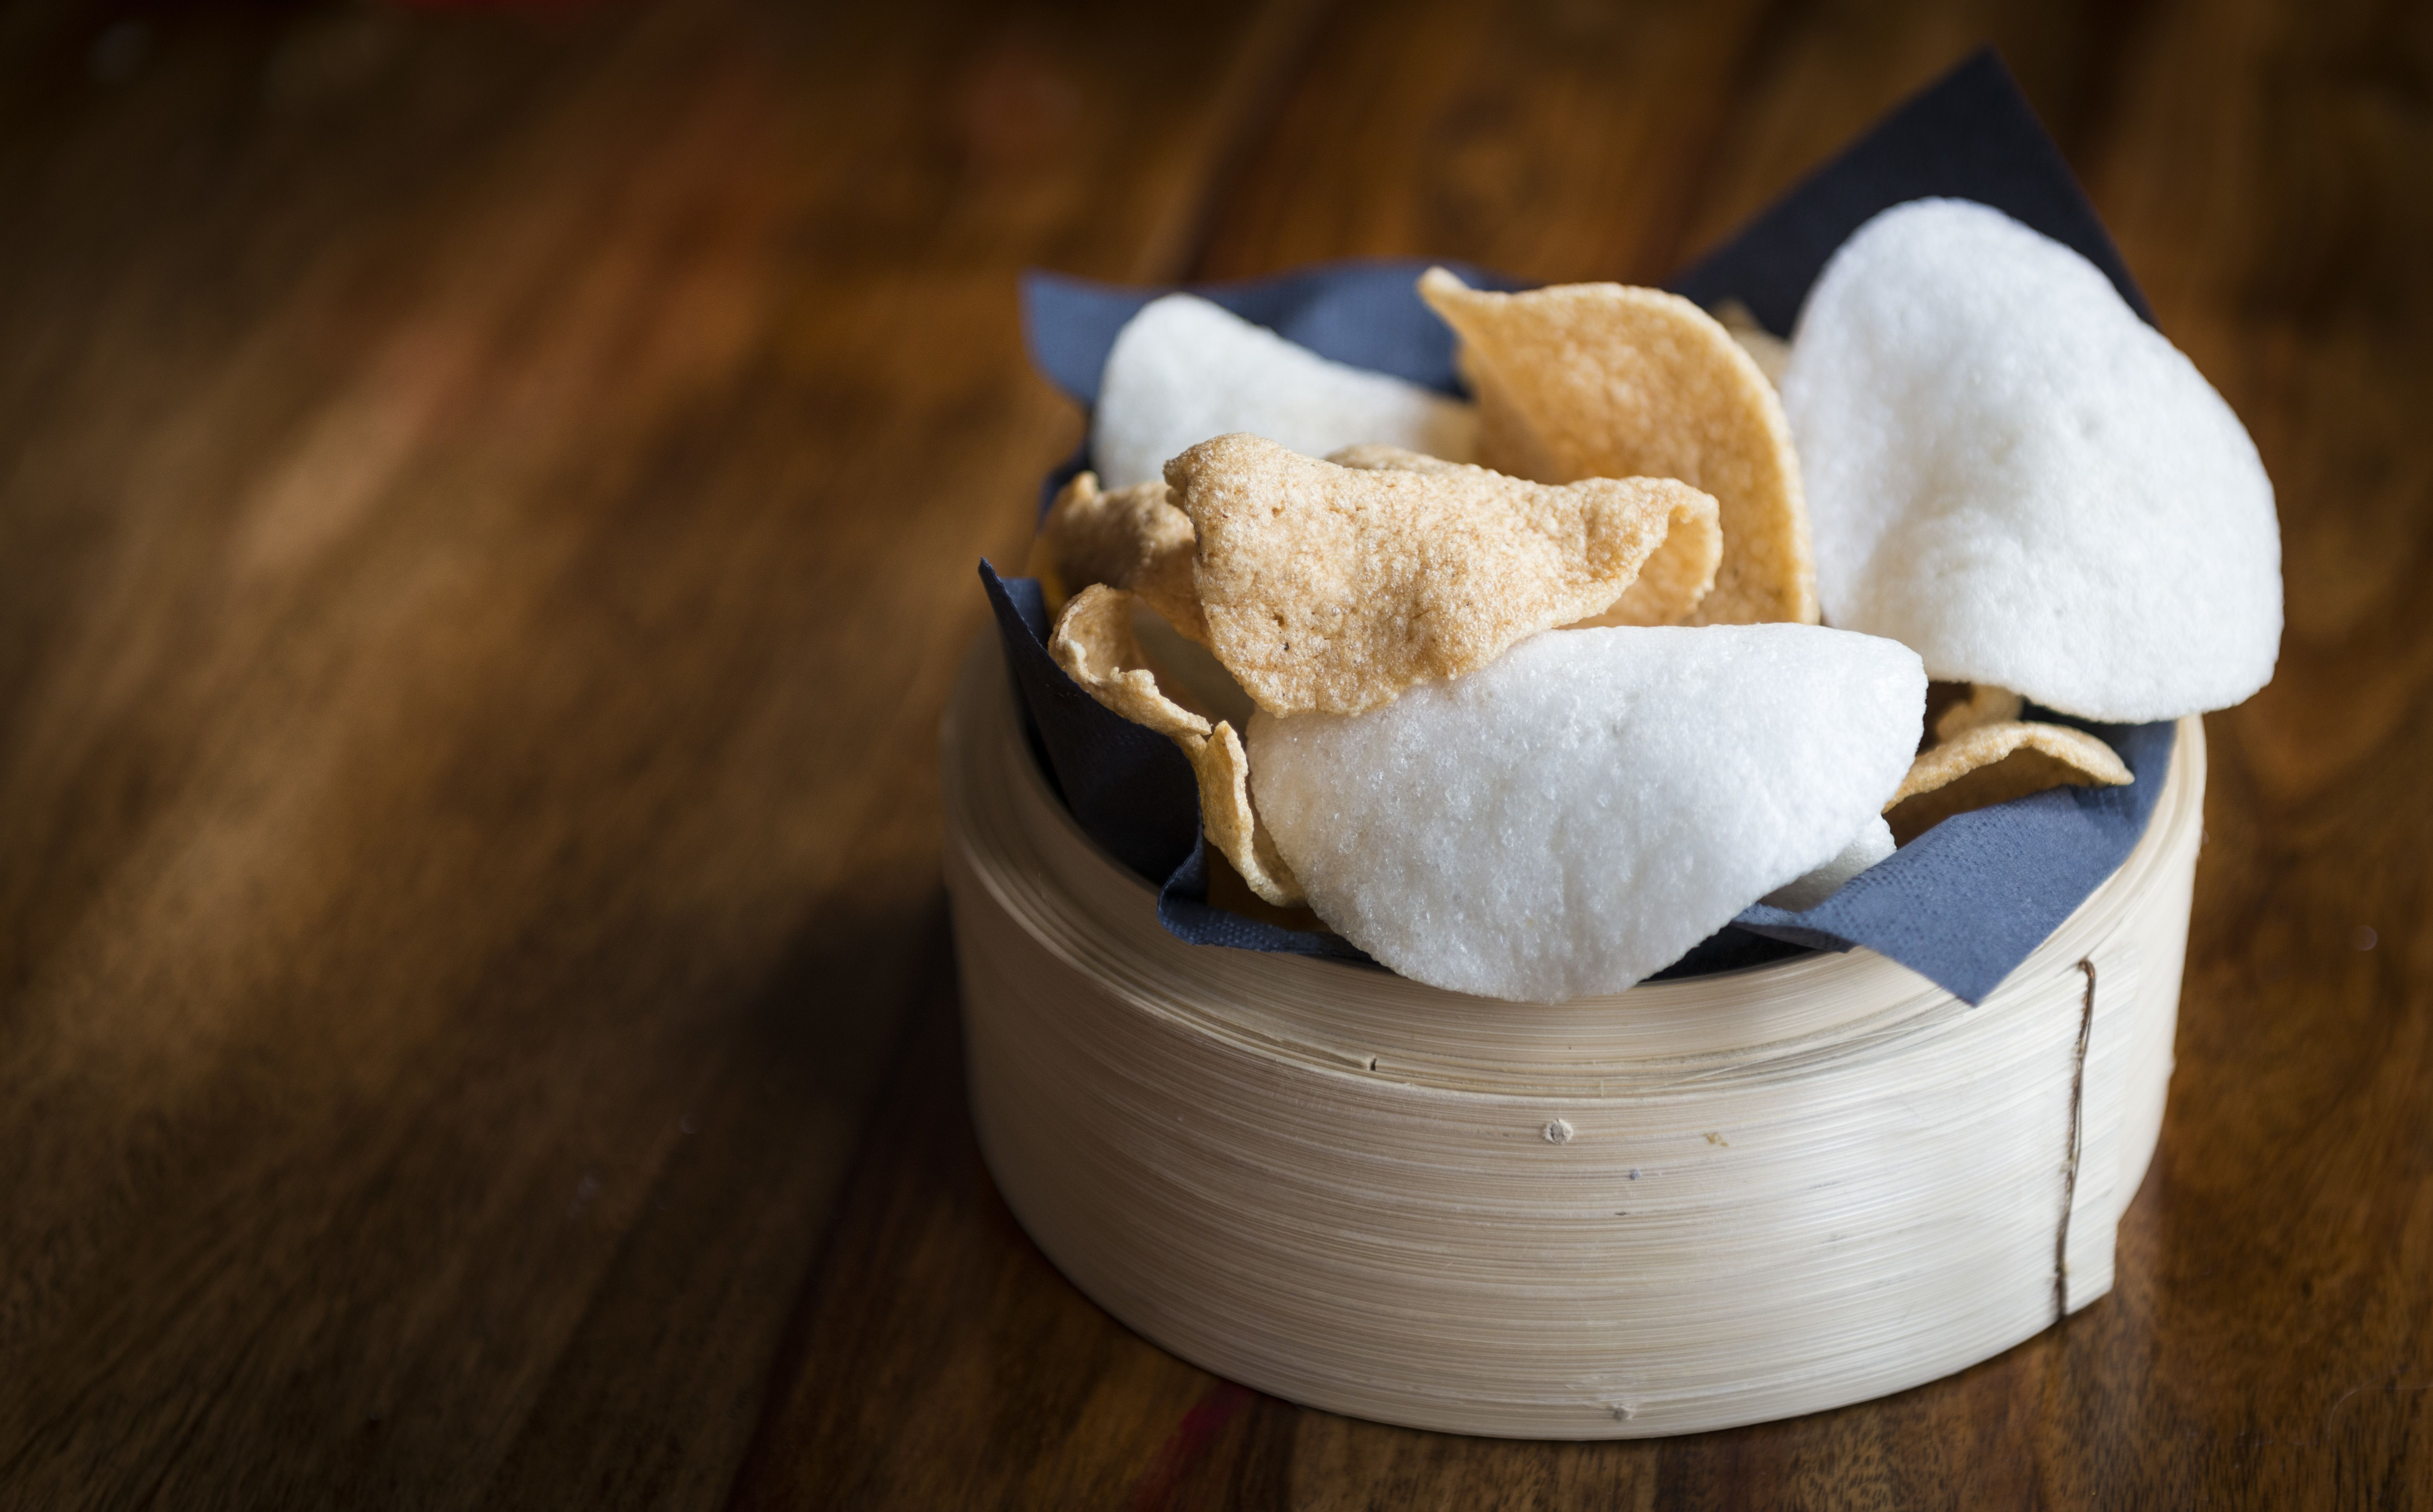 Prawn crackers in bowl on wooden table